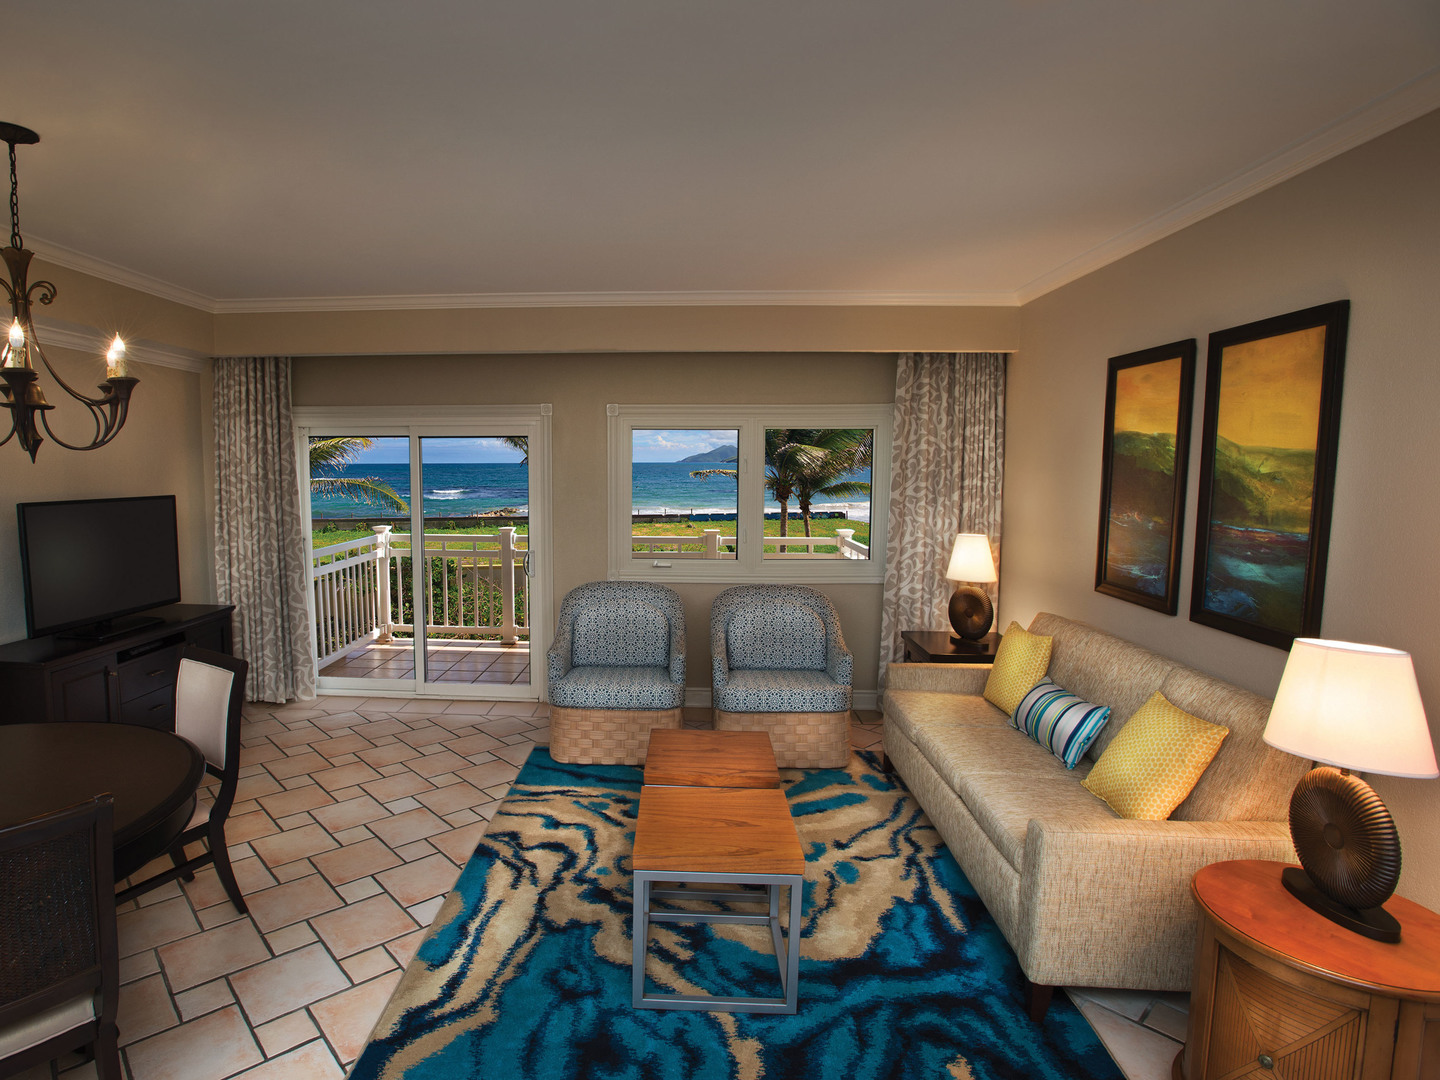 Marriott's St. Kitts Beach Club Villa Guest Living Room. Marriott's St. Kitts Beach Club is located in St. Kitts,  St. Kitts and Nevis.